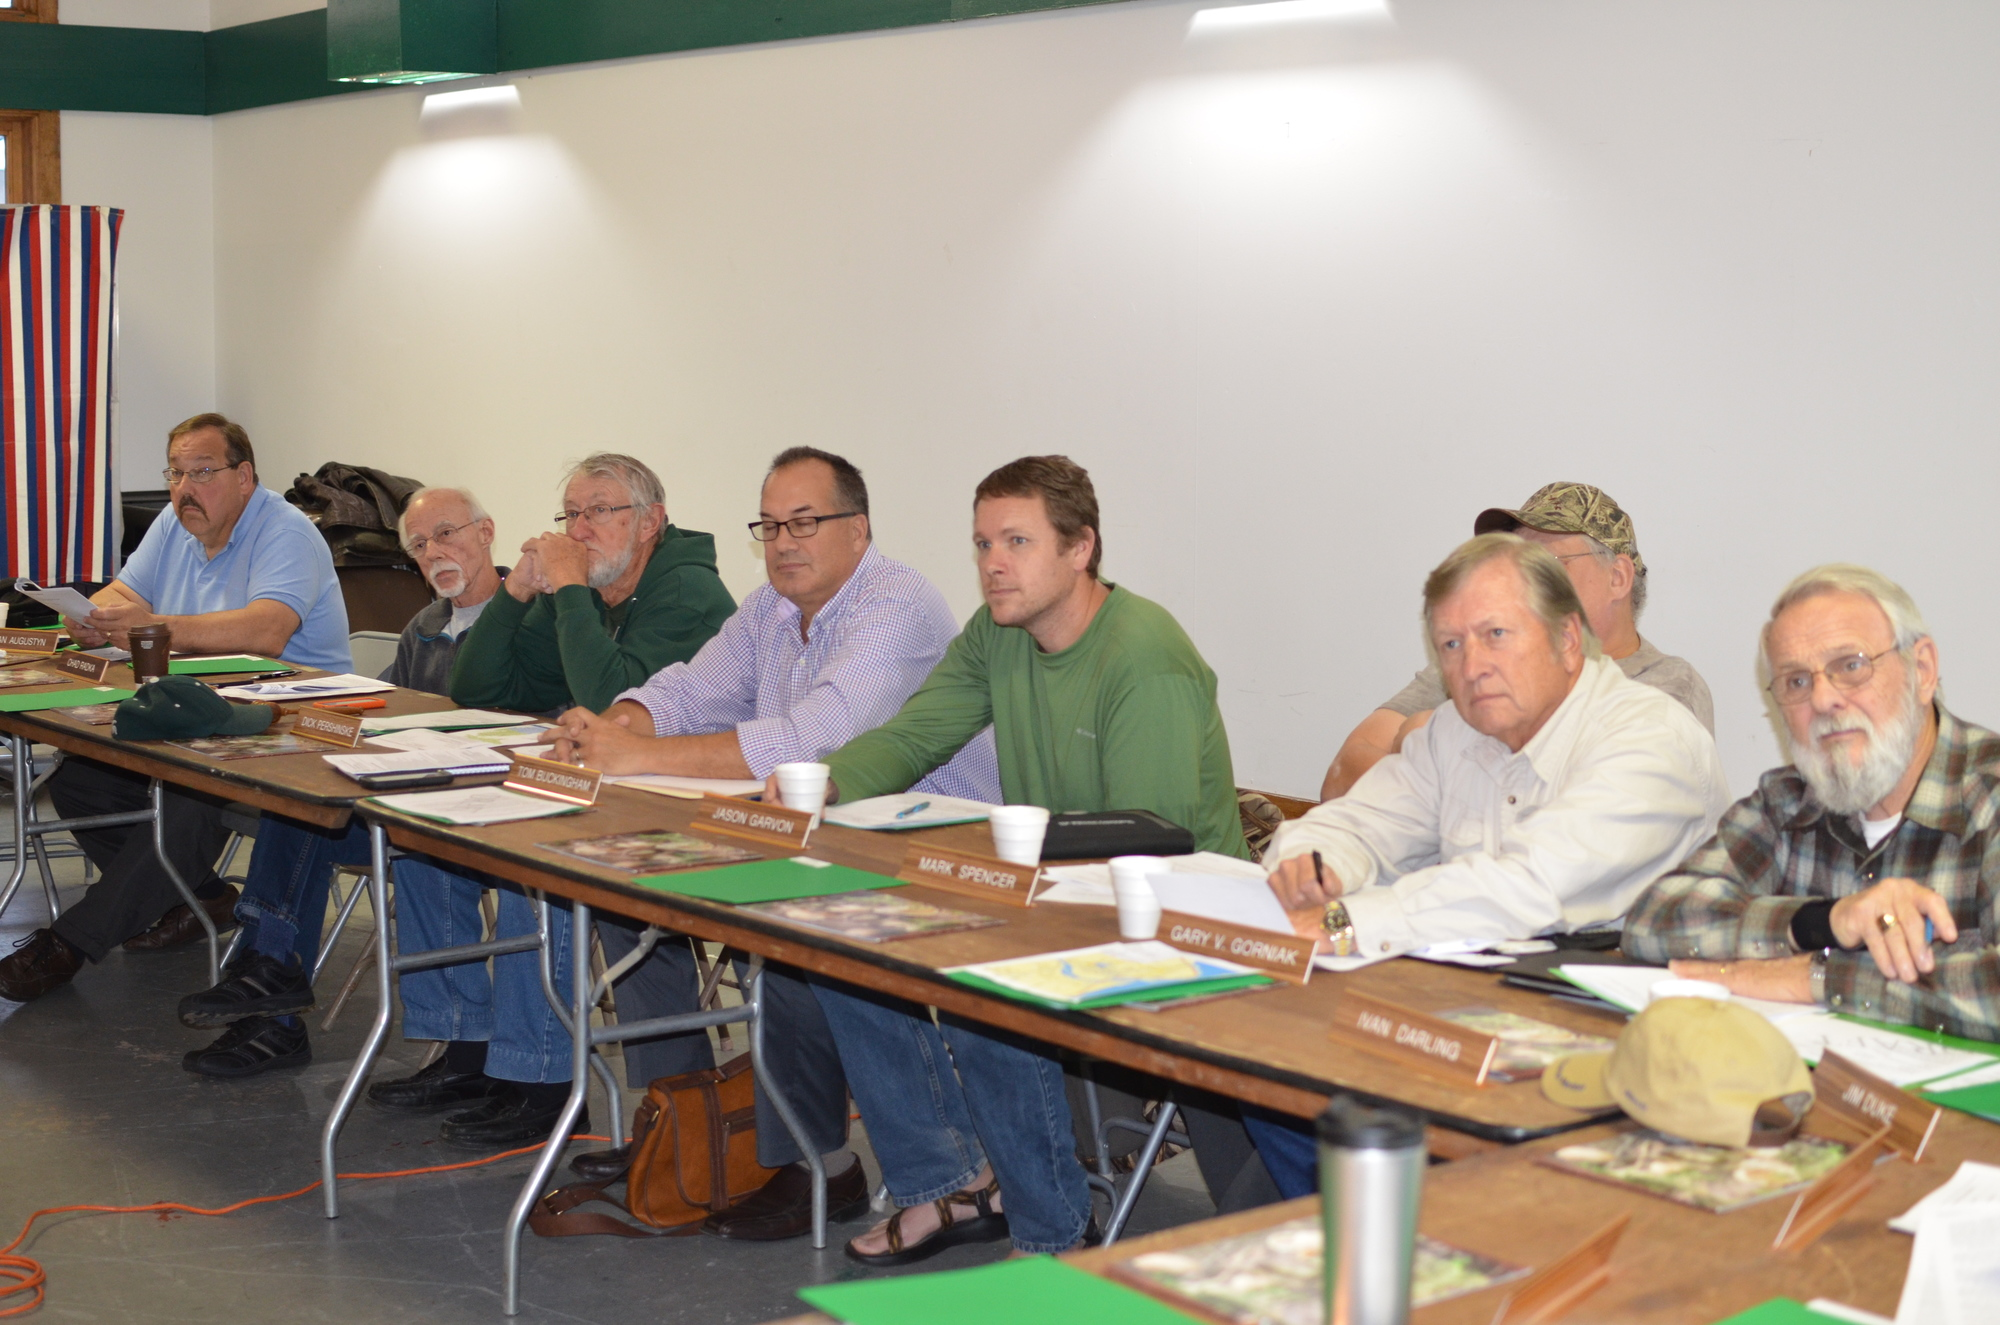 Members of the Eastern U.P. Citizens' Advisory Council listen to a speaker at a recent meeting.